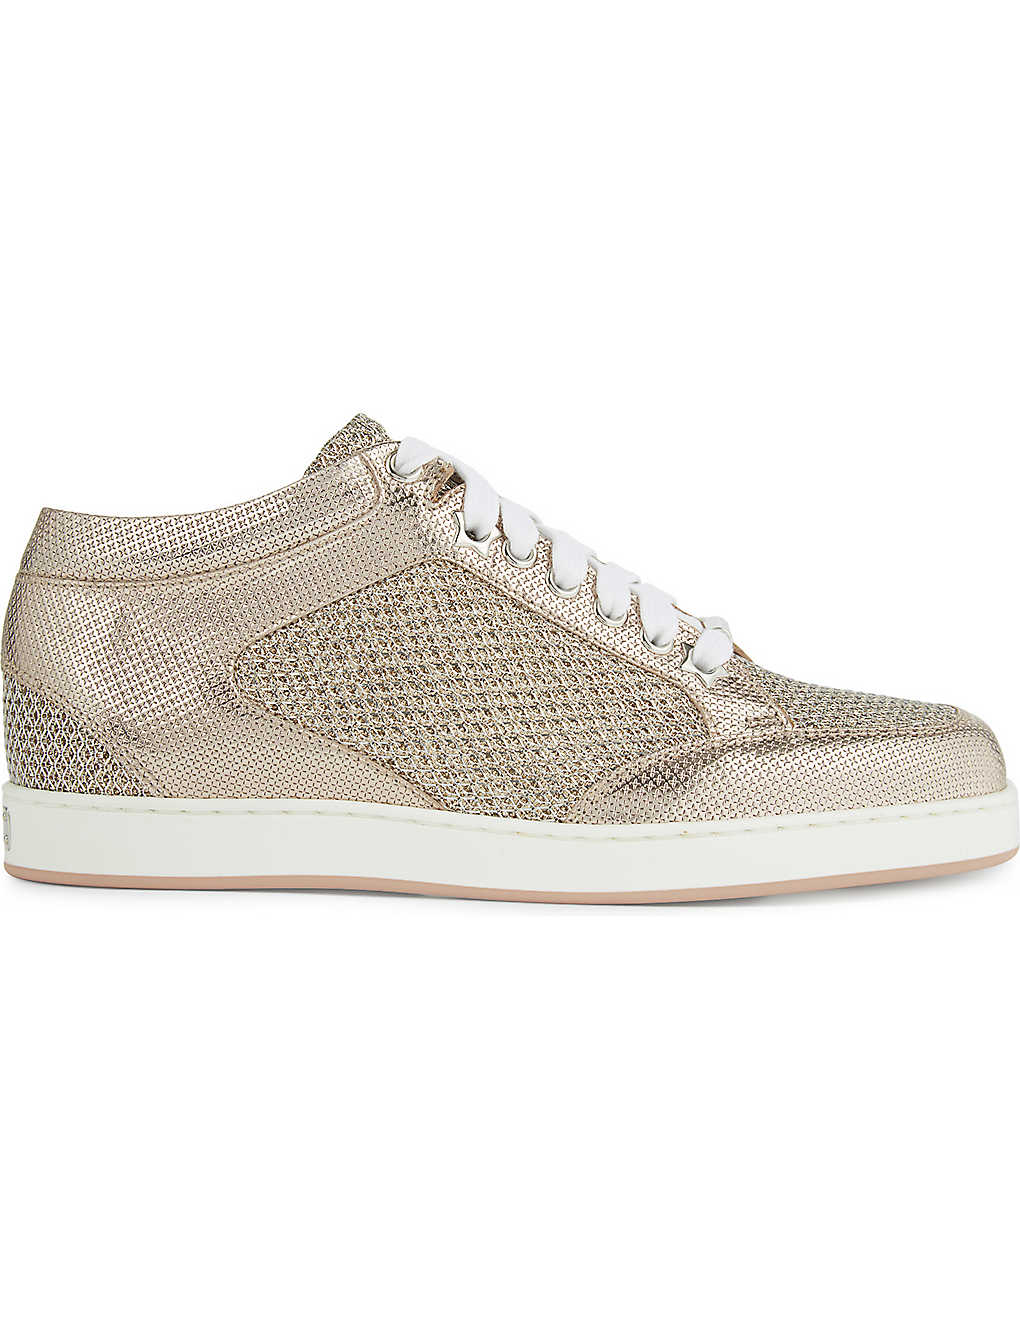 683a6dbd5e JIMMY CHOO - Miami metallic glitter trainers | Selfridges.com